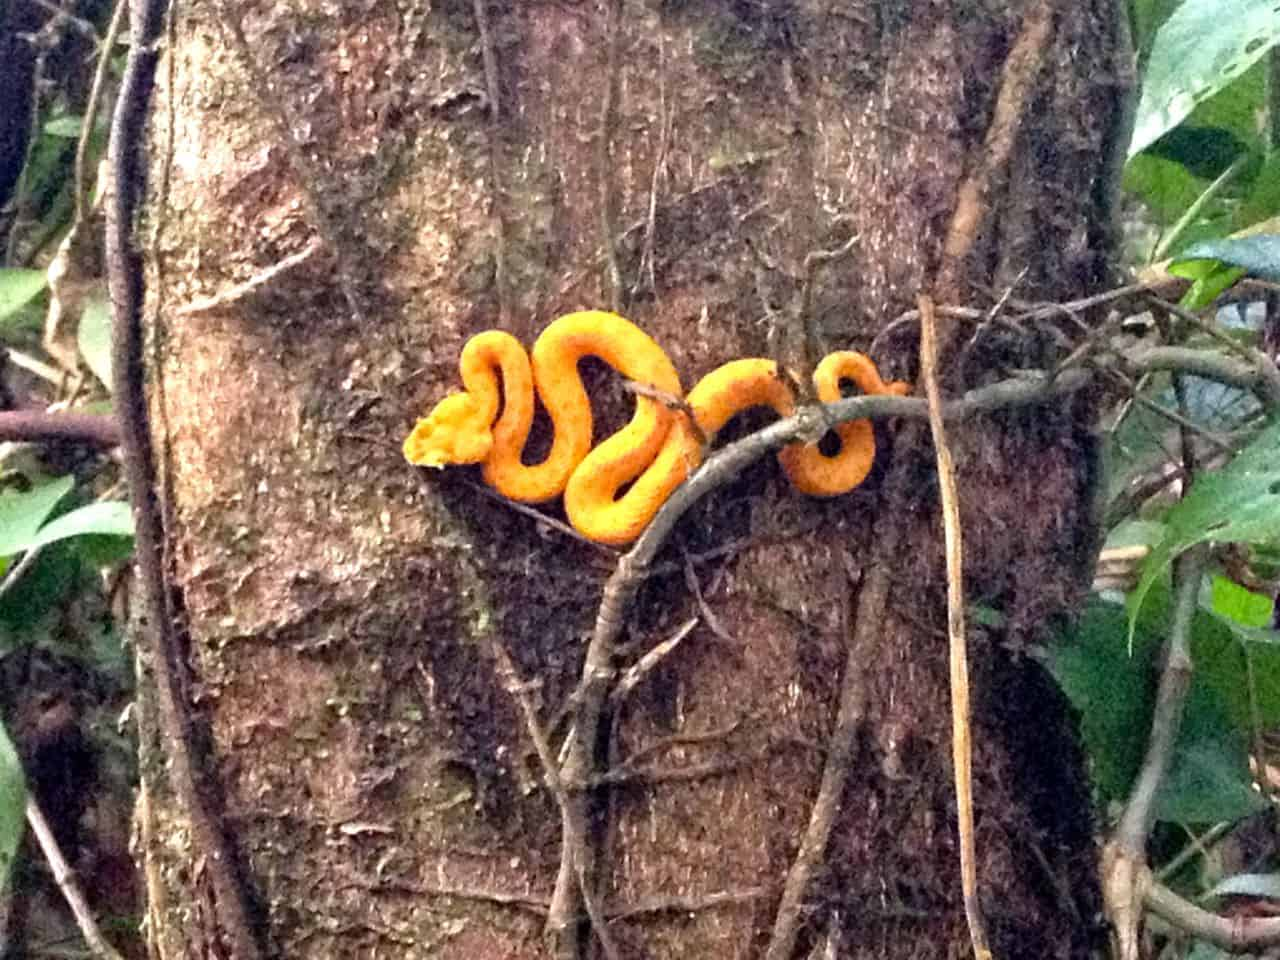 deadly beauty a pit viper clings to a tree harmless from a distance the snake can deliver a deadly bite robert isenbergthe tico times - Garden Snake Bite